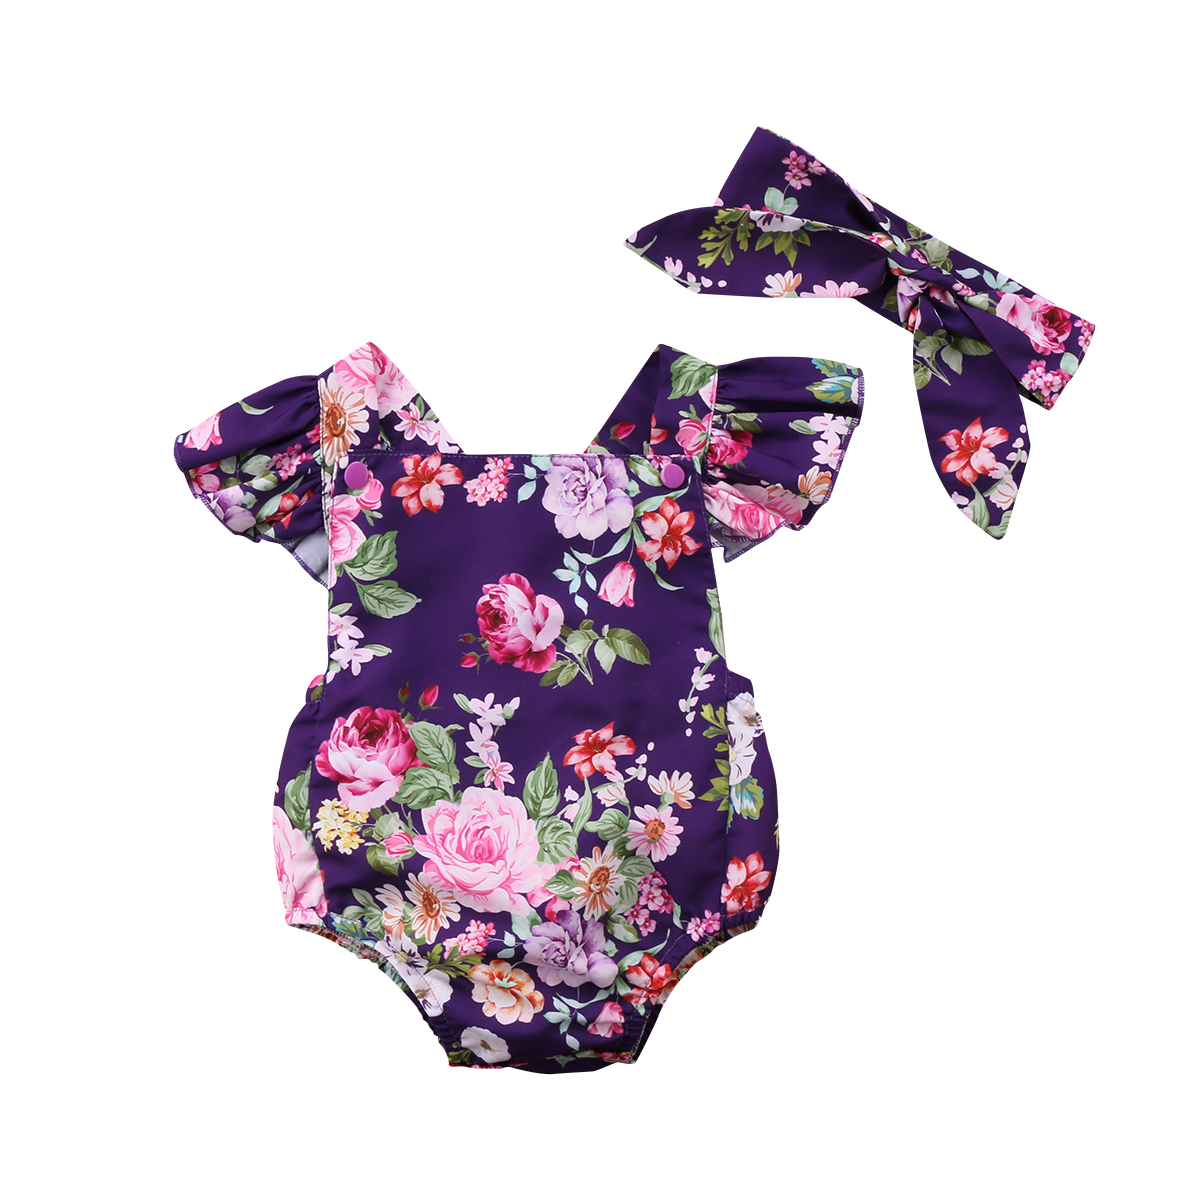 Newborn Baby Girls Cotton Romper Jumpsuit Headband Outfits Clothes